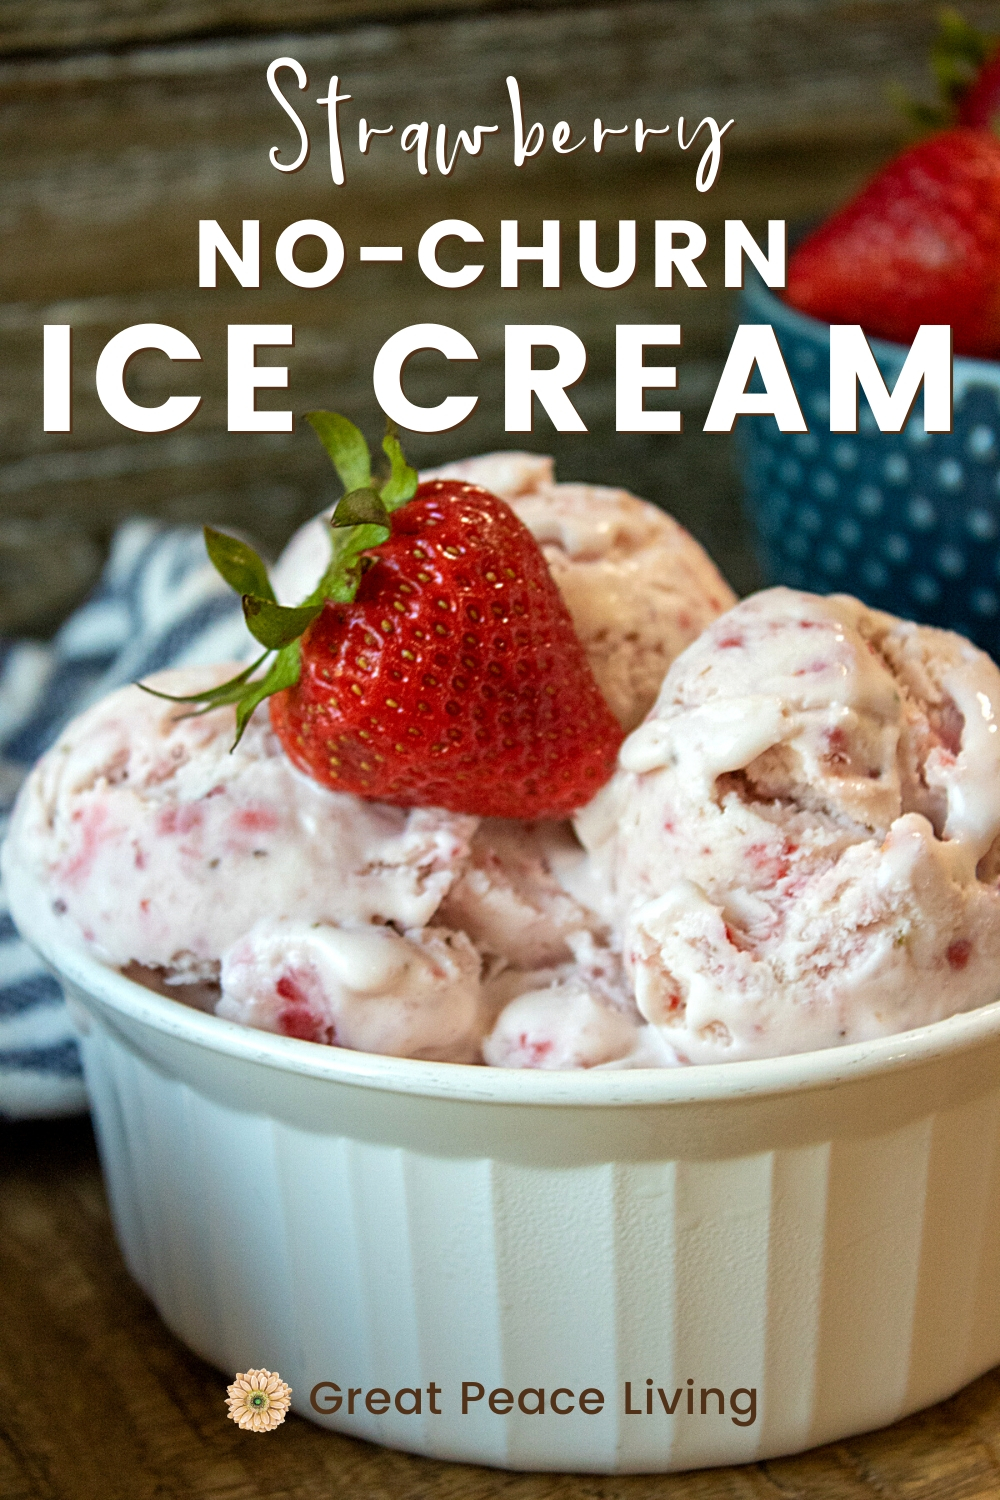 Strawberry No-Churn Ice Cream